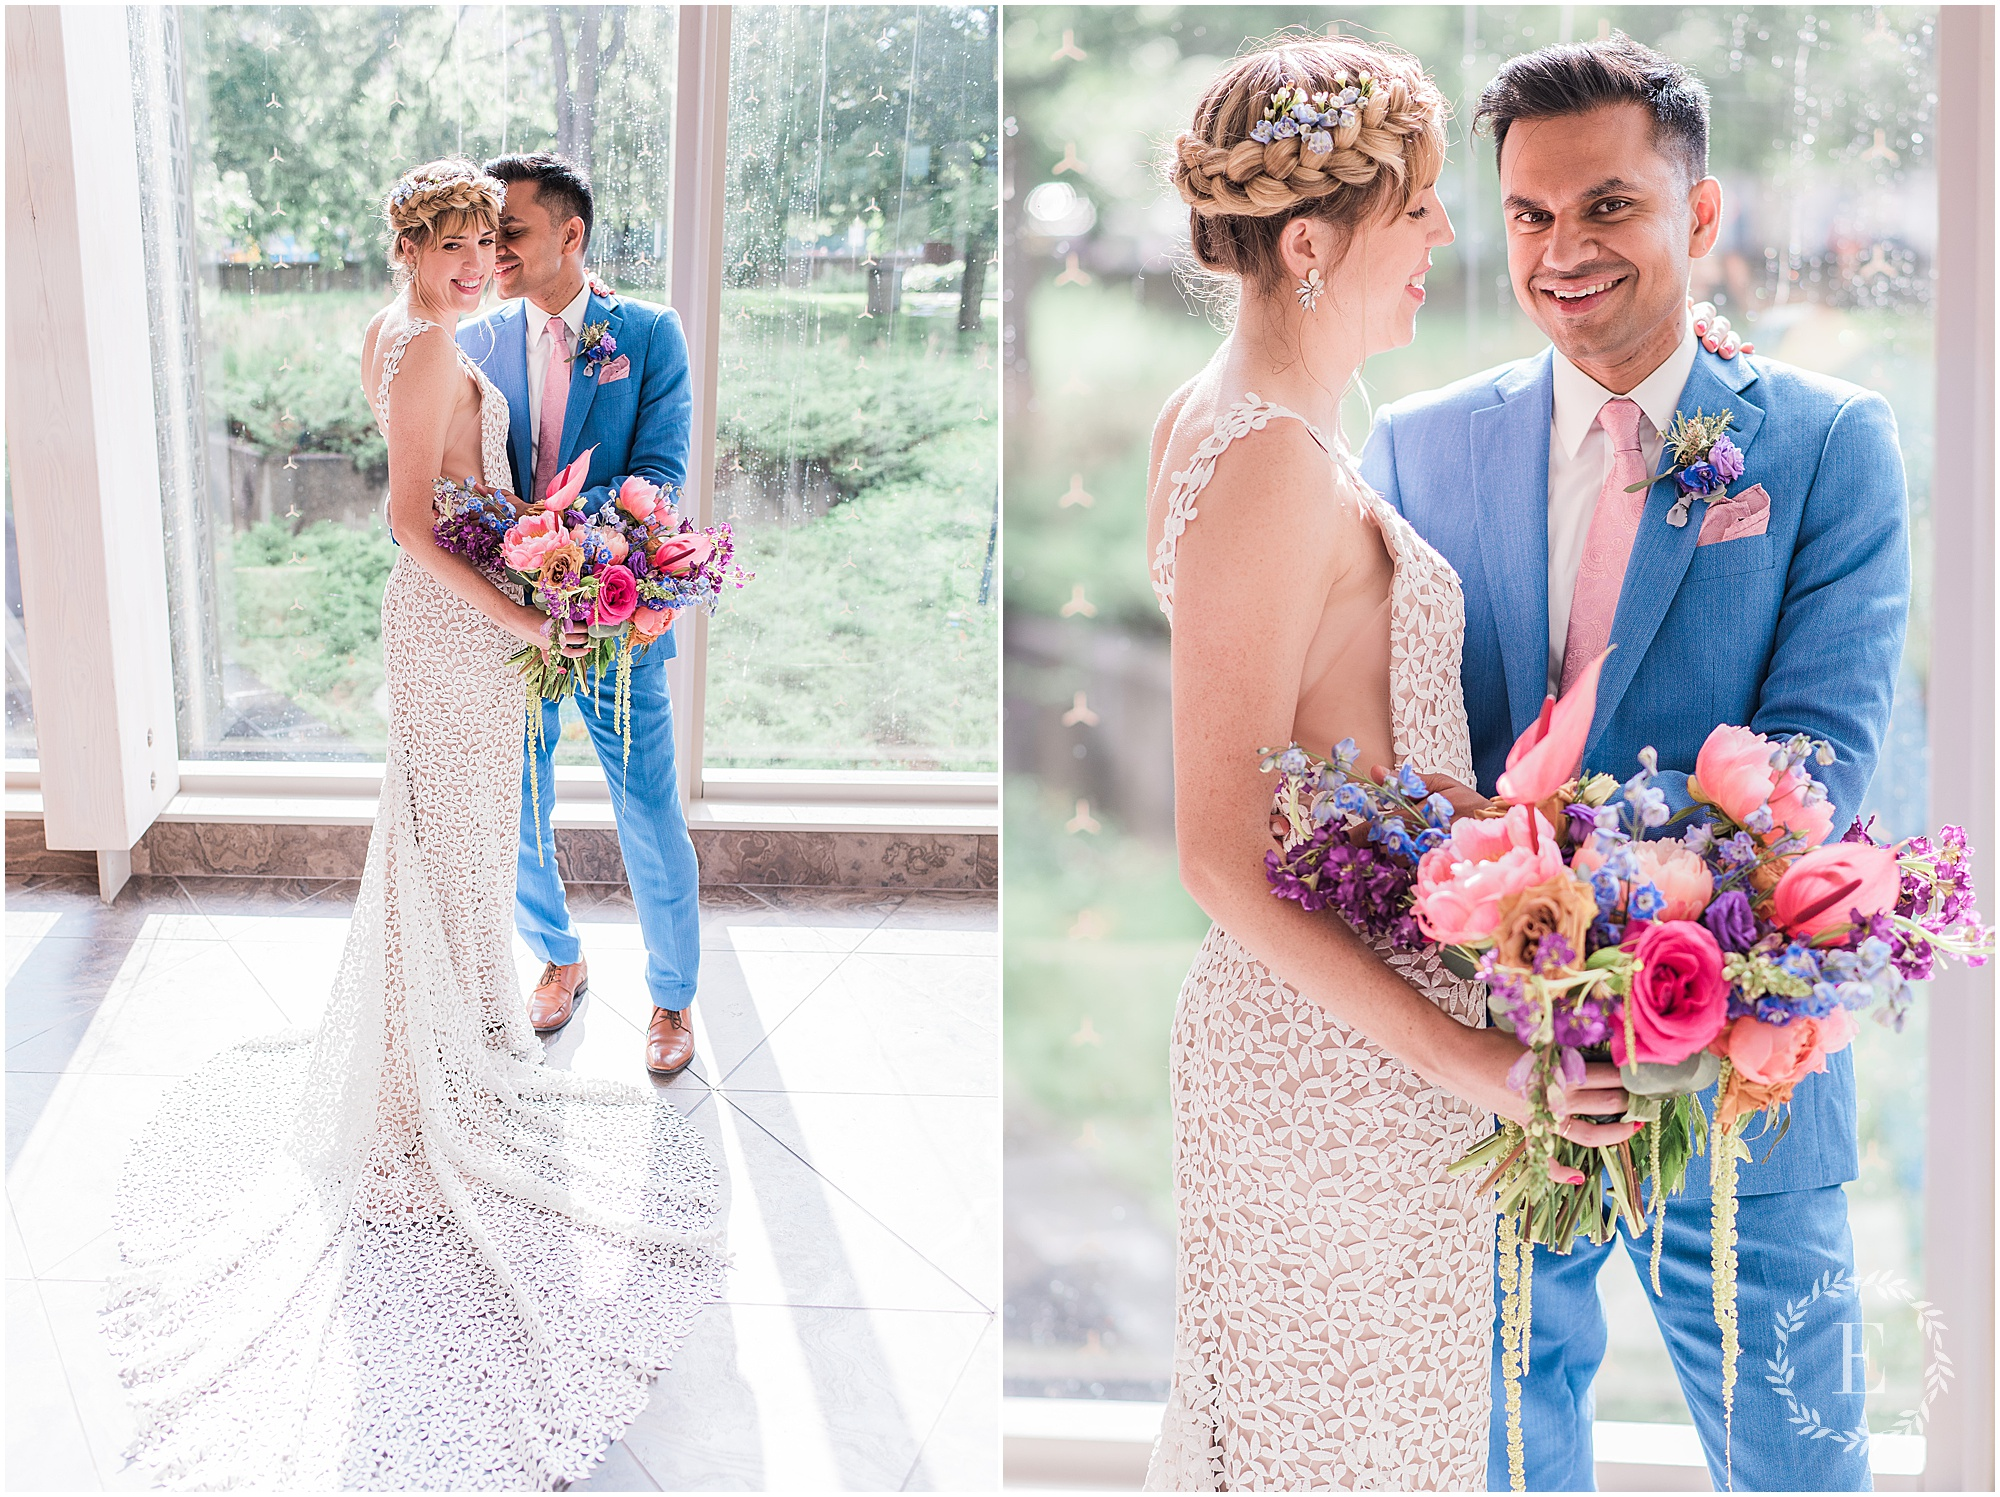 626 Cait and Saaqib Jabberwocky Ottawa Wedding 2019 - Photography by Emma.jpg